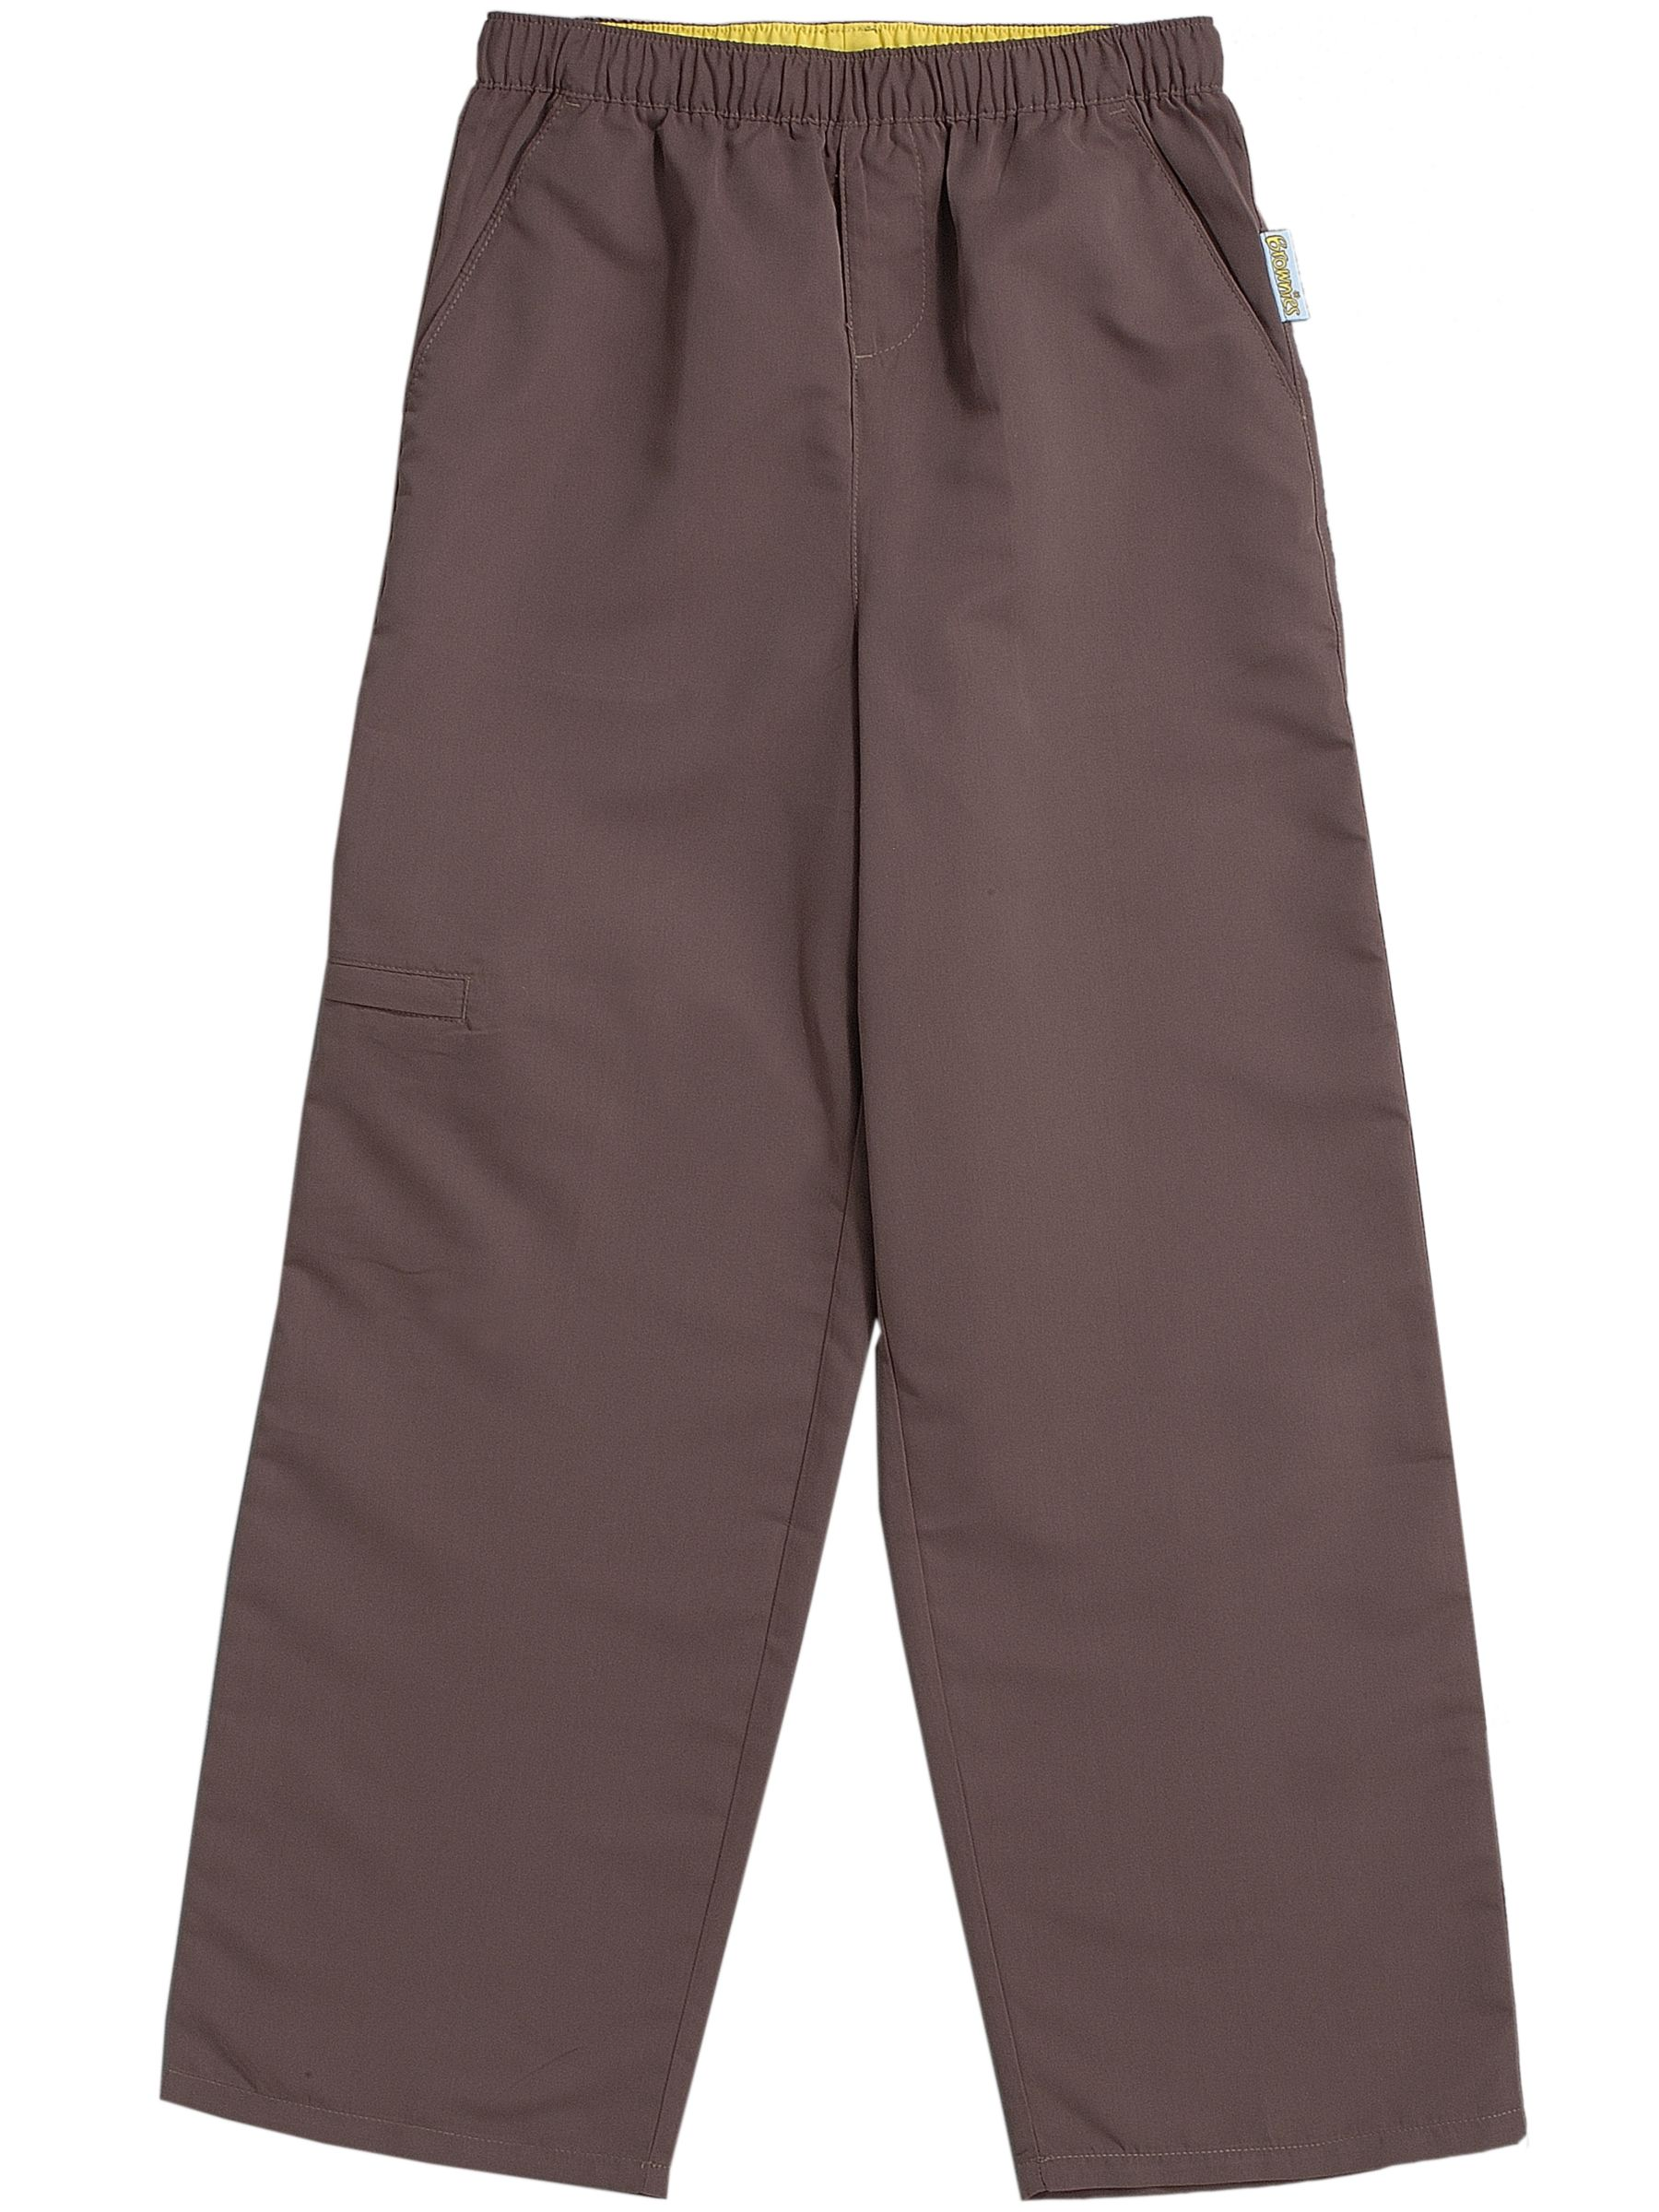 Brownies Brownies Uniform Trousers, Brown